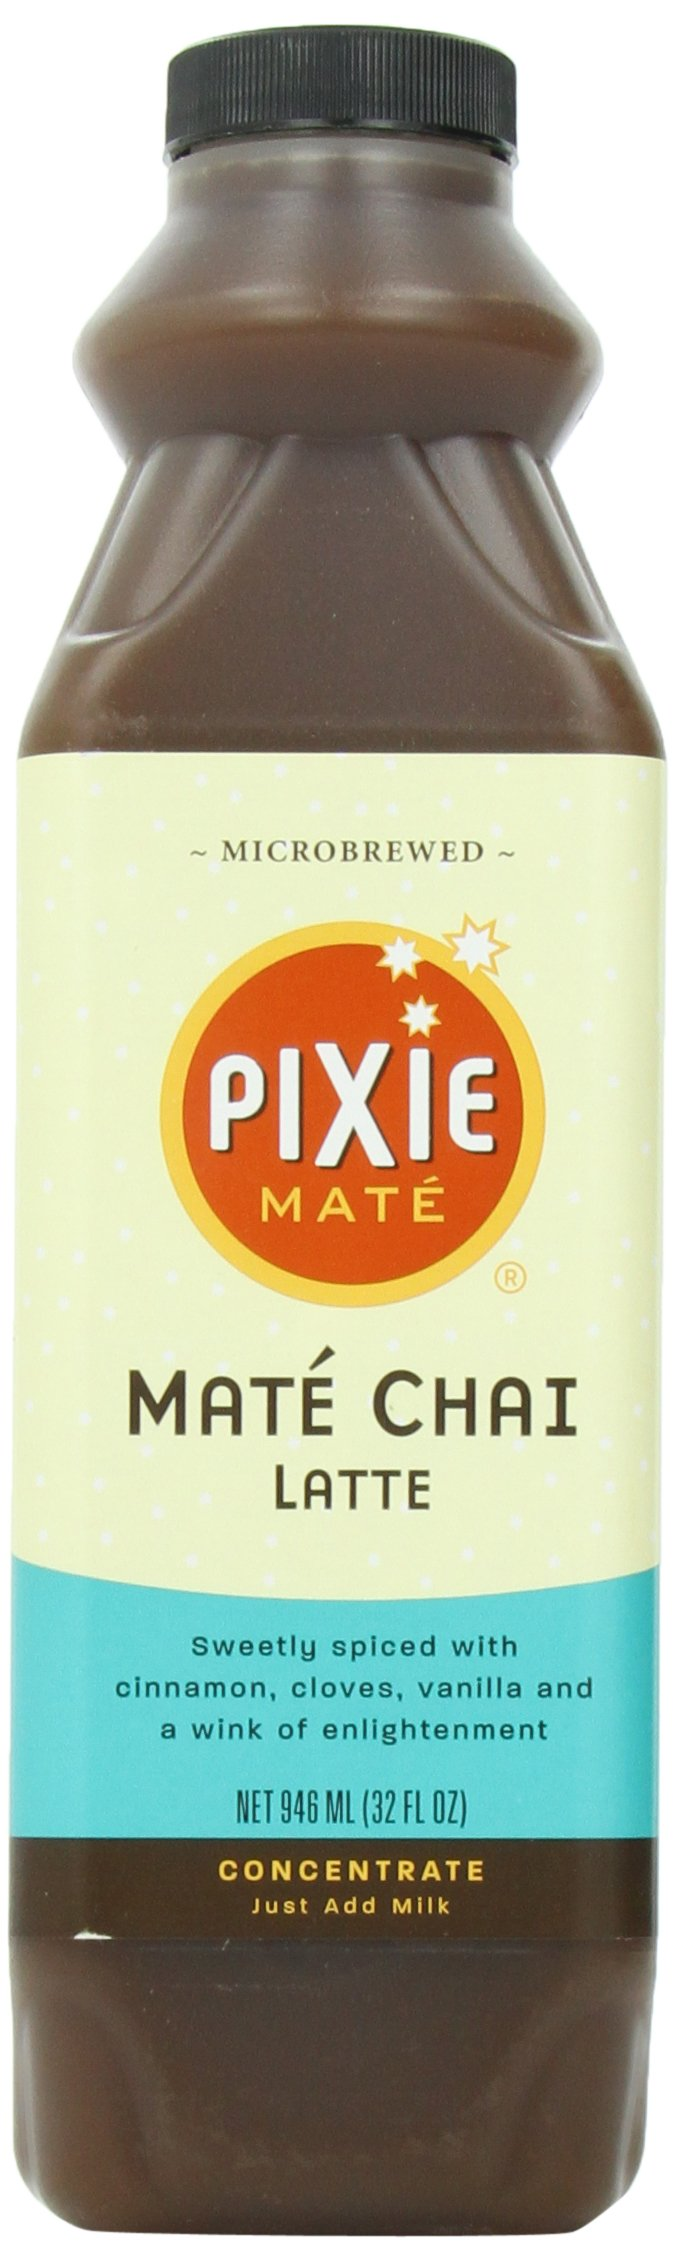 Pixie Mate, Mate Chai Latte, 32-Ounce (Pack of 6)